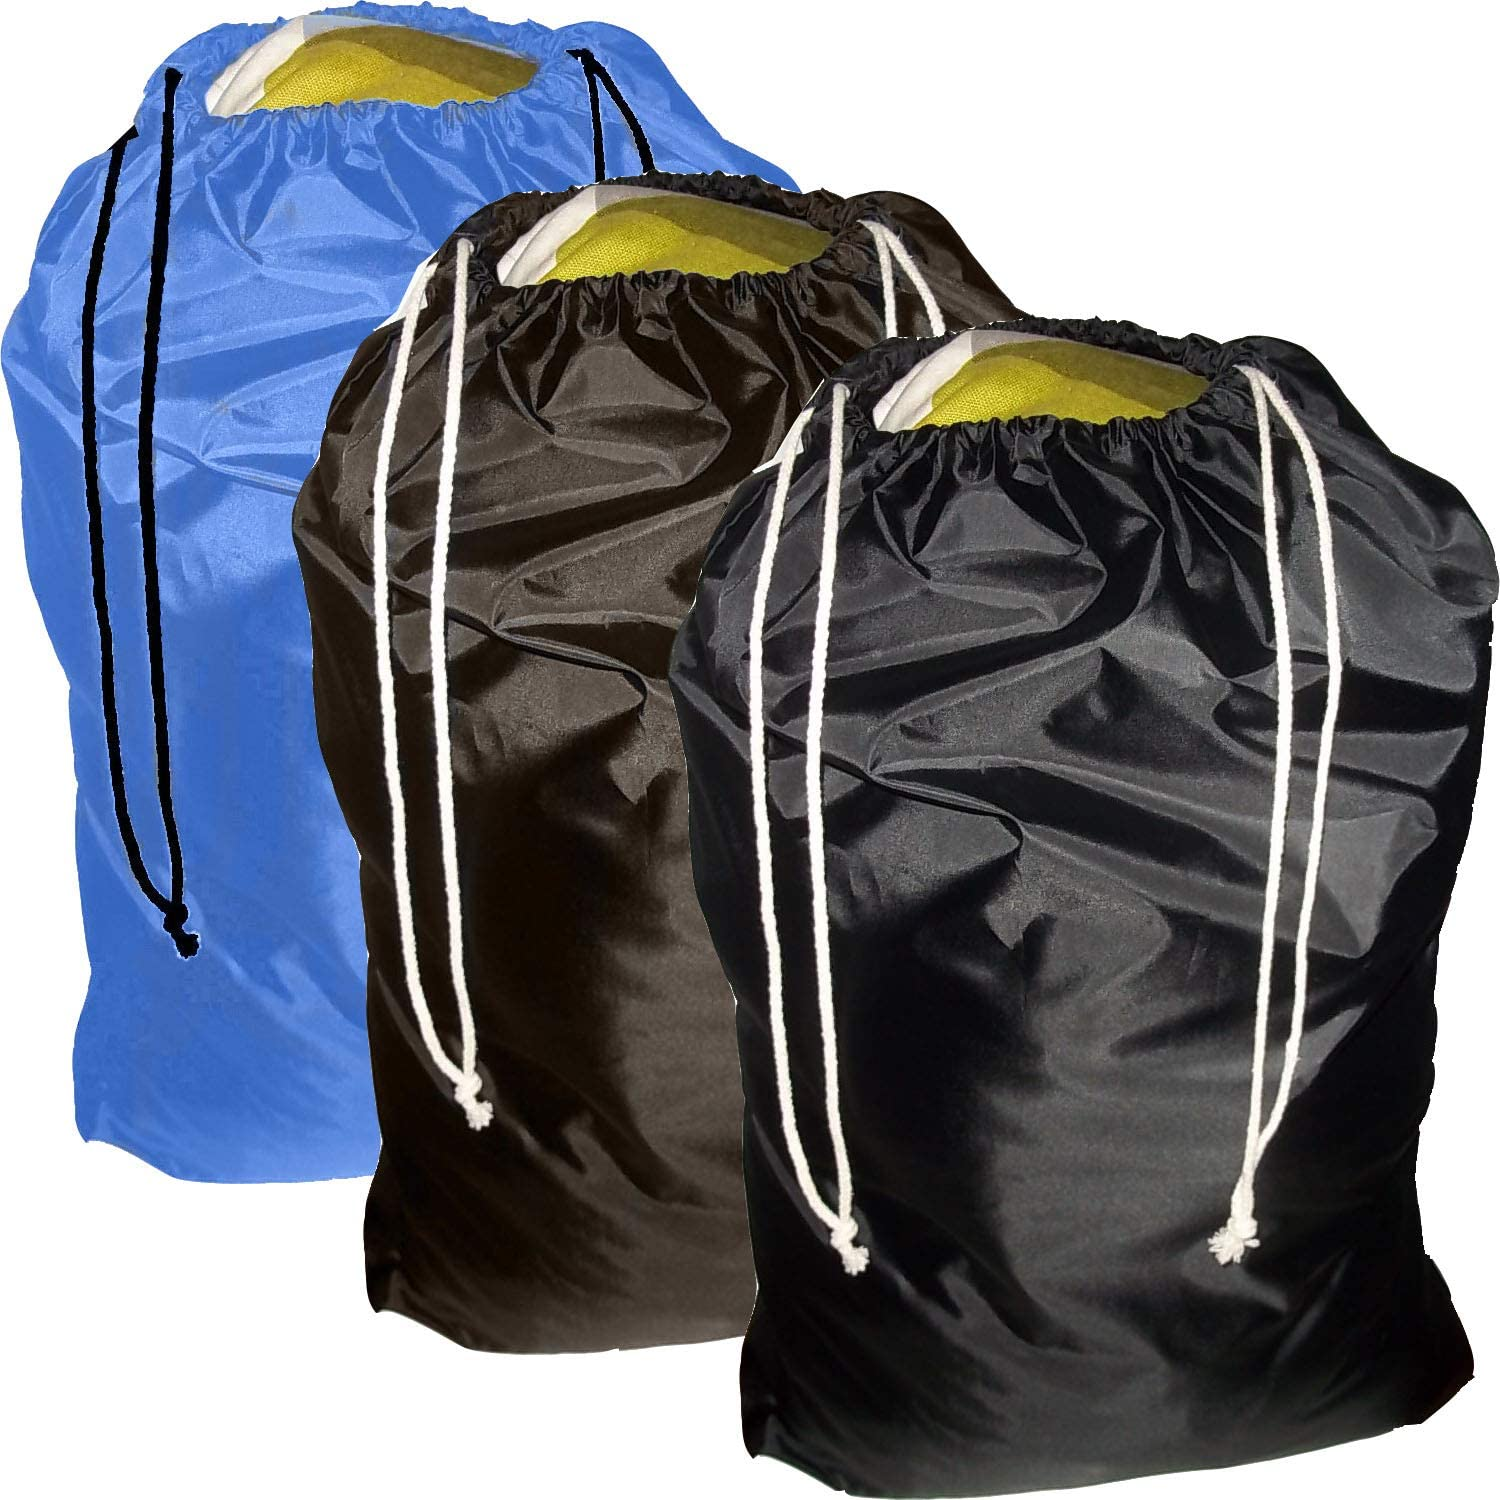 FashionBoutique Set of 3 Heavy Duty Jumbo Sized Nylon Laundry Bag (Black/Brown/Sky Blue)